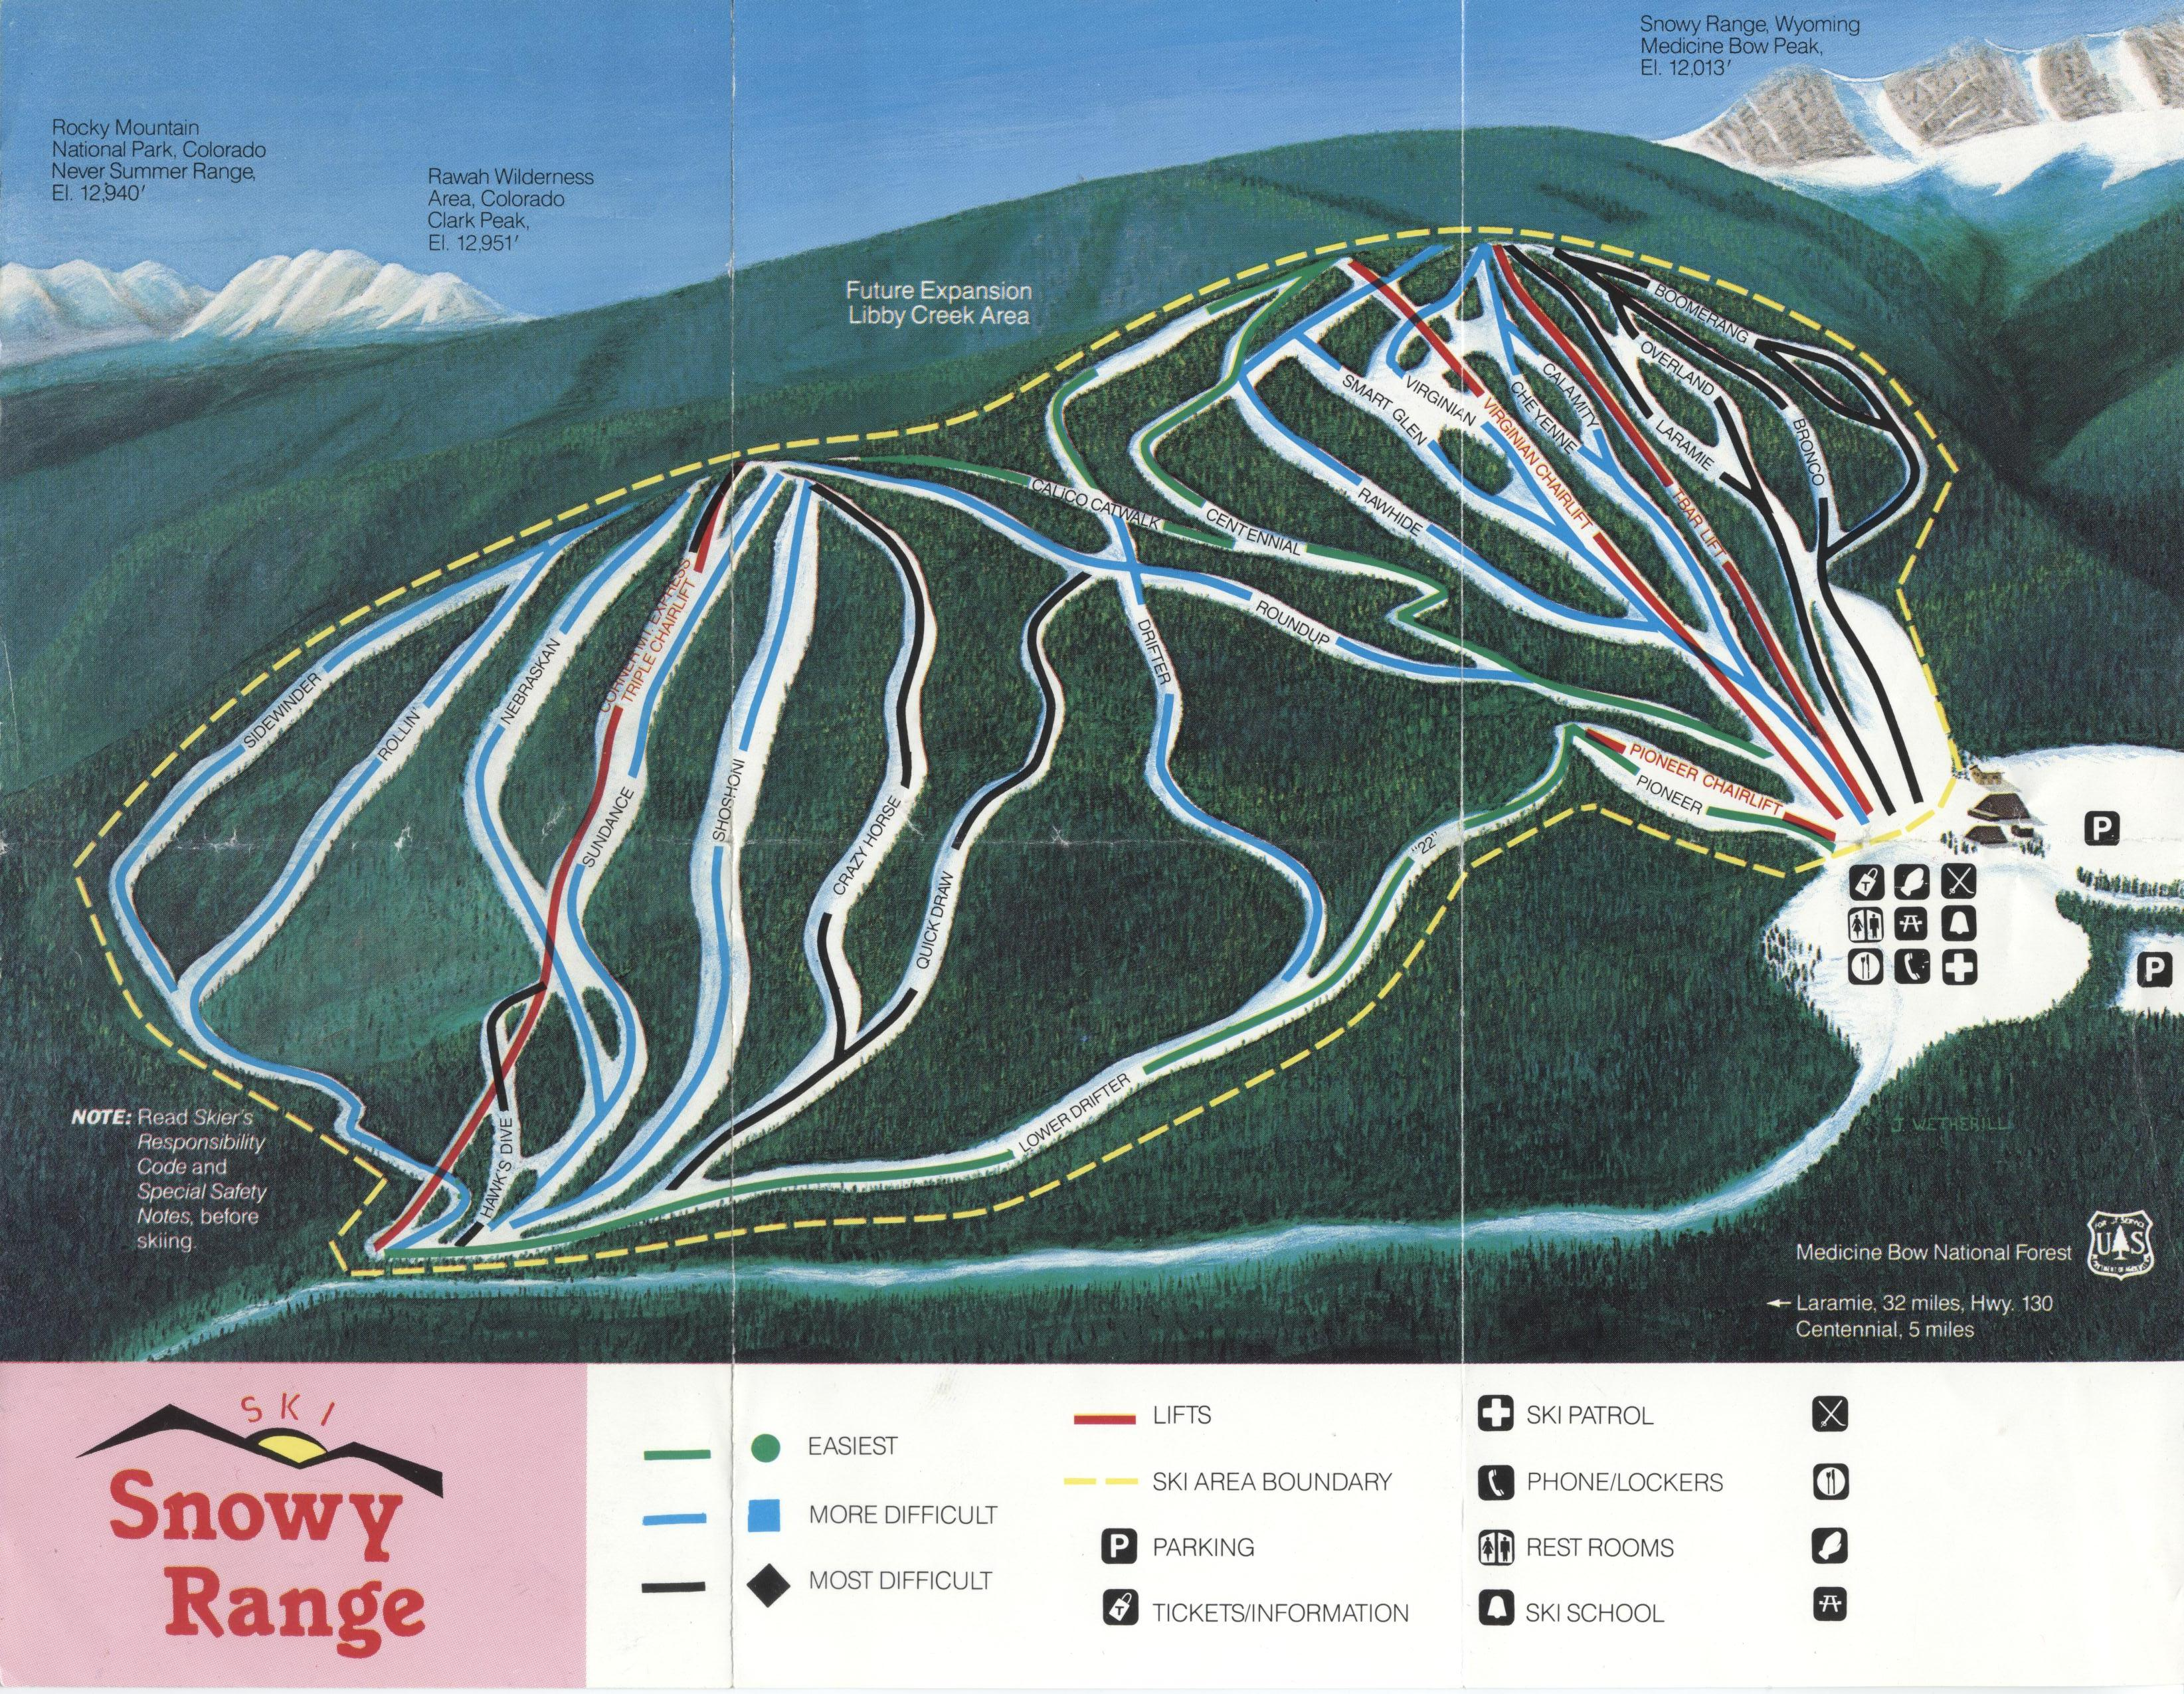 Snowy Range - SkiMap.org on lakes in wyoming map, skiing near jackson wy, sleeping giant state park trail map, national parks in wyoming map, caves in wyoming map, casinos in wyoming map, rocky mountains in wyoming map, ghost towns in wyoming map, skiing in lake powell, skiing in jackson wyoming, jackson hole ski trail map,